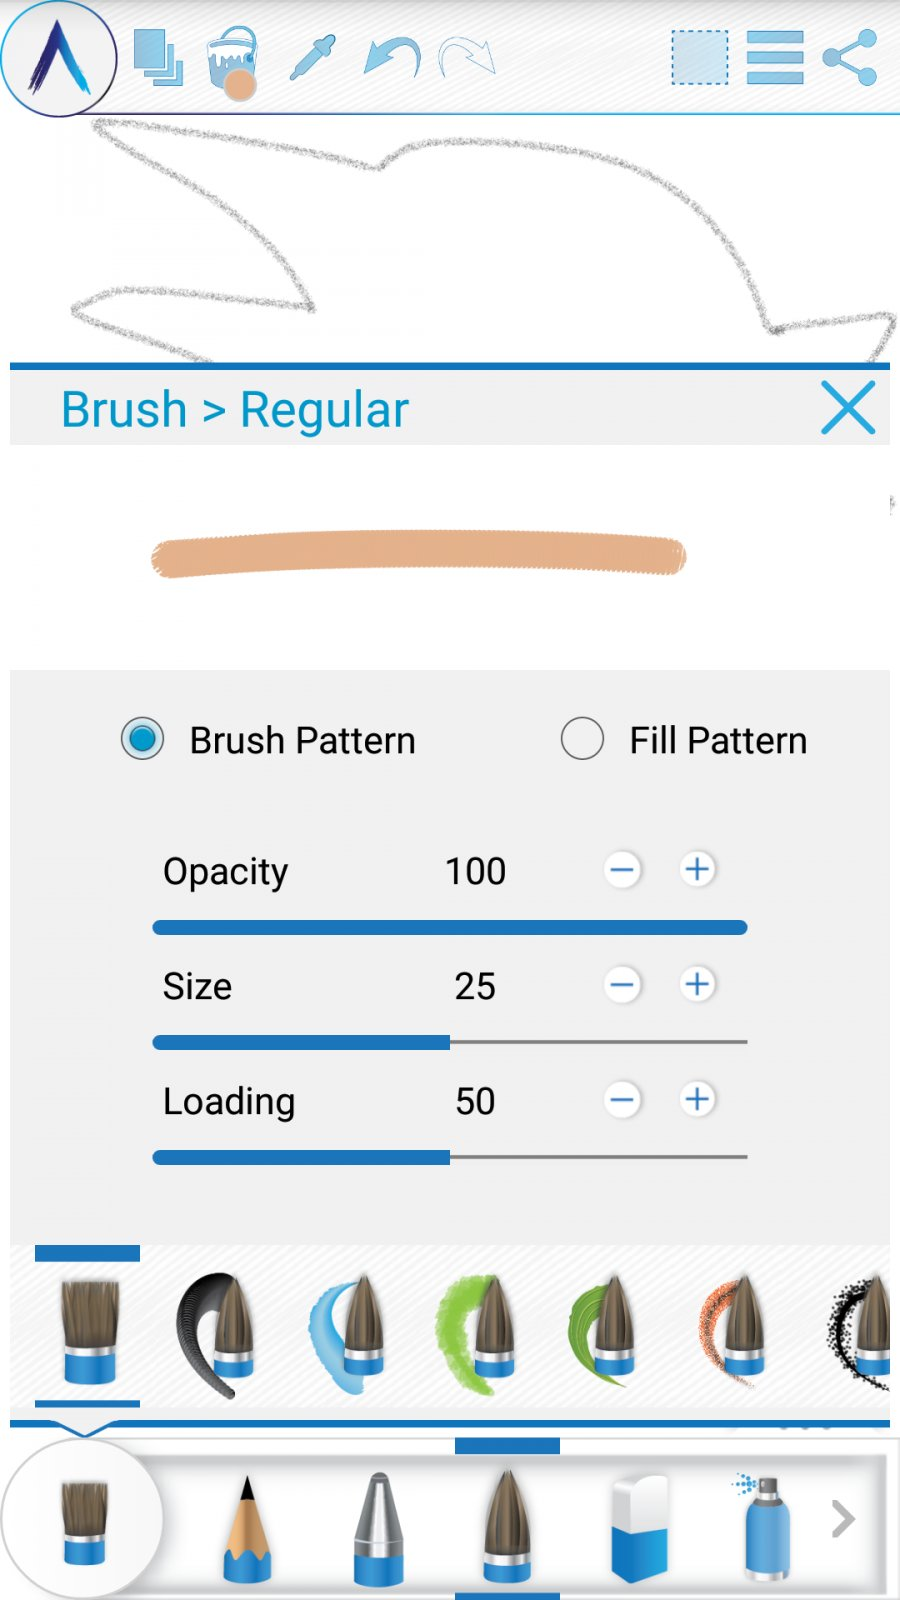 Artecture Draw, Sketch, Paint Apk For Android - Approm org